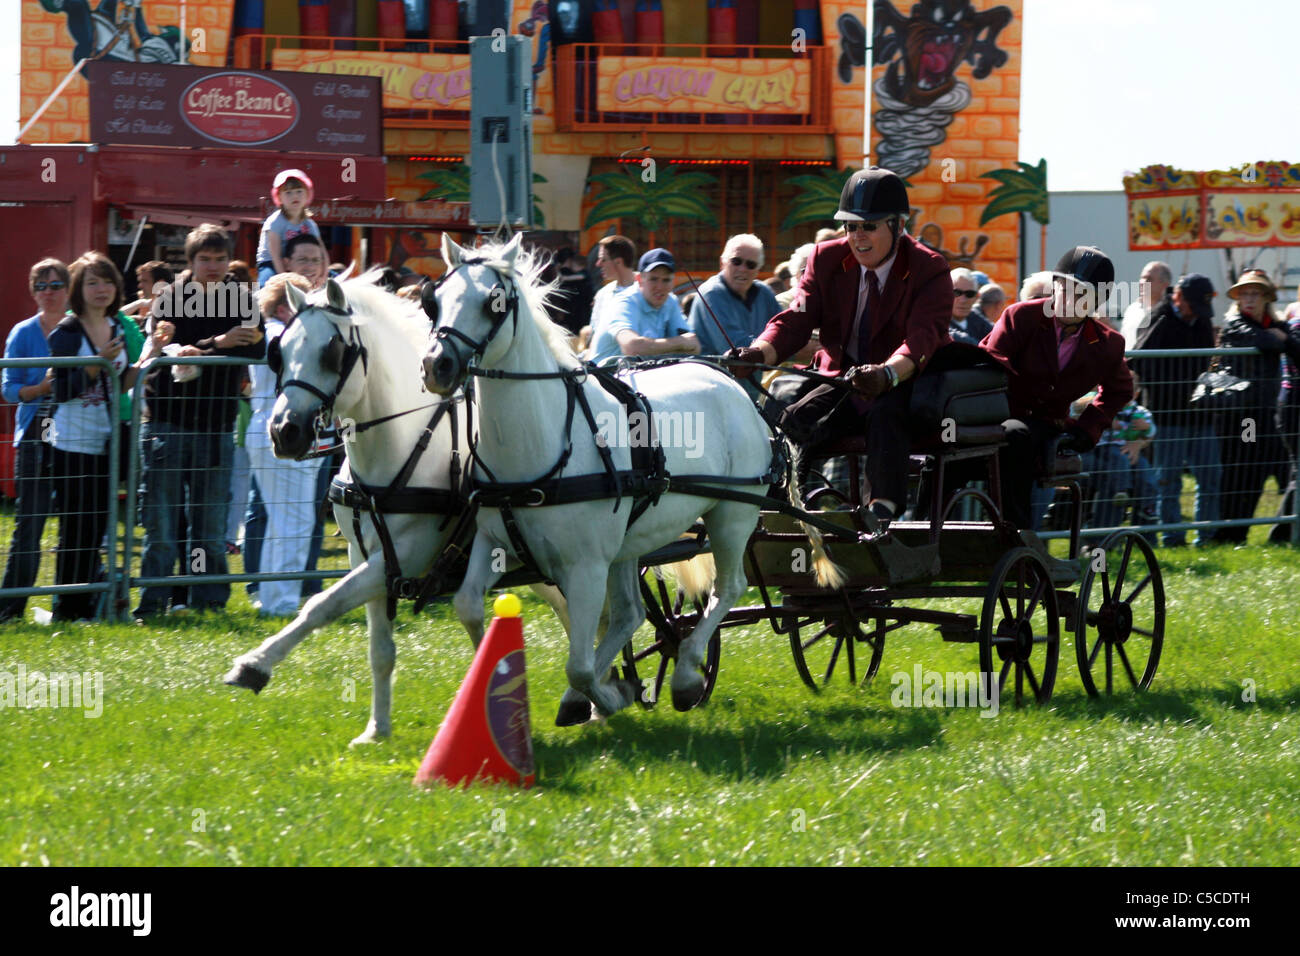 Scurry racing at Cheshire Show ground Tabley Cheshire England - Stock Image